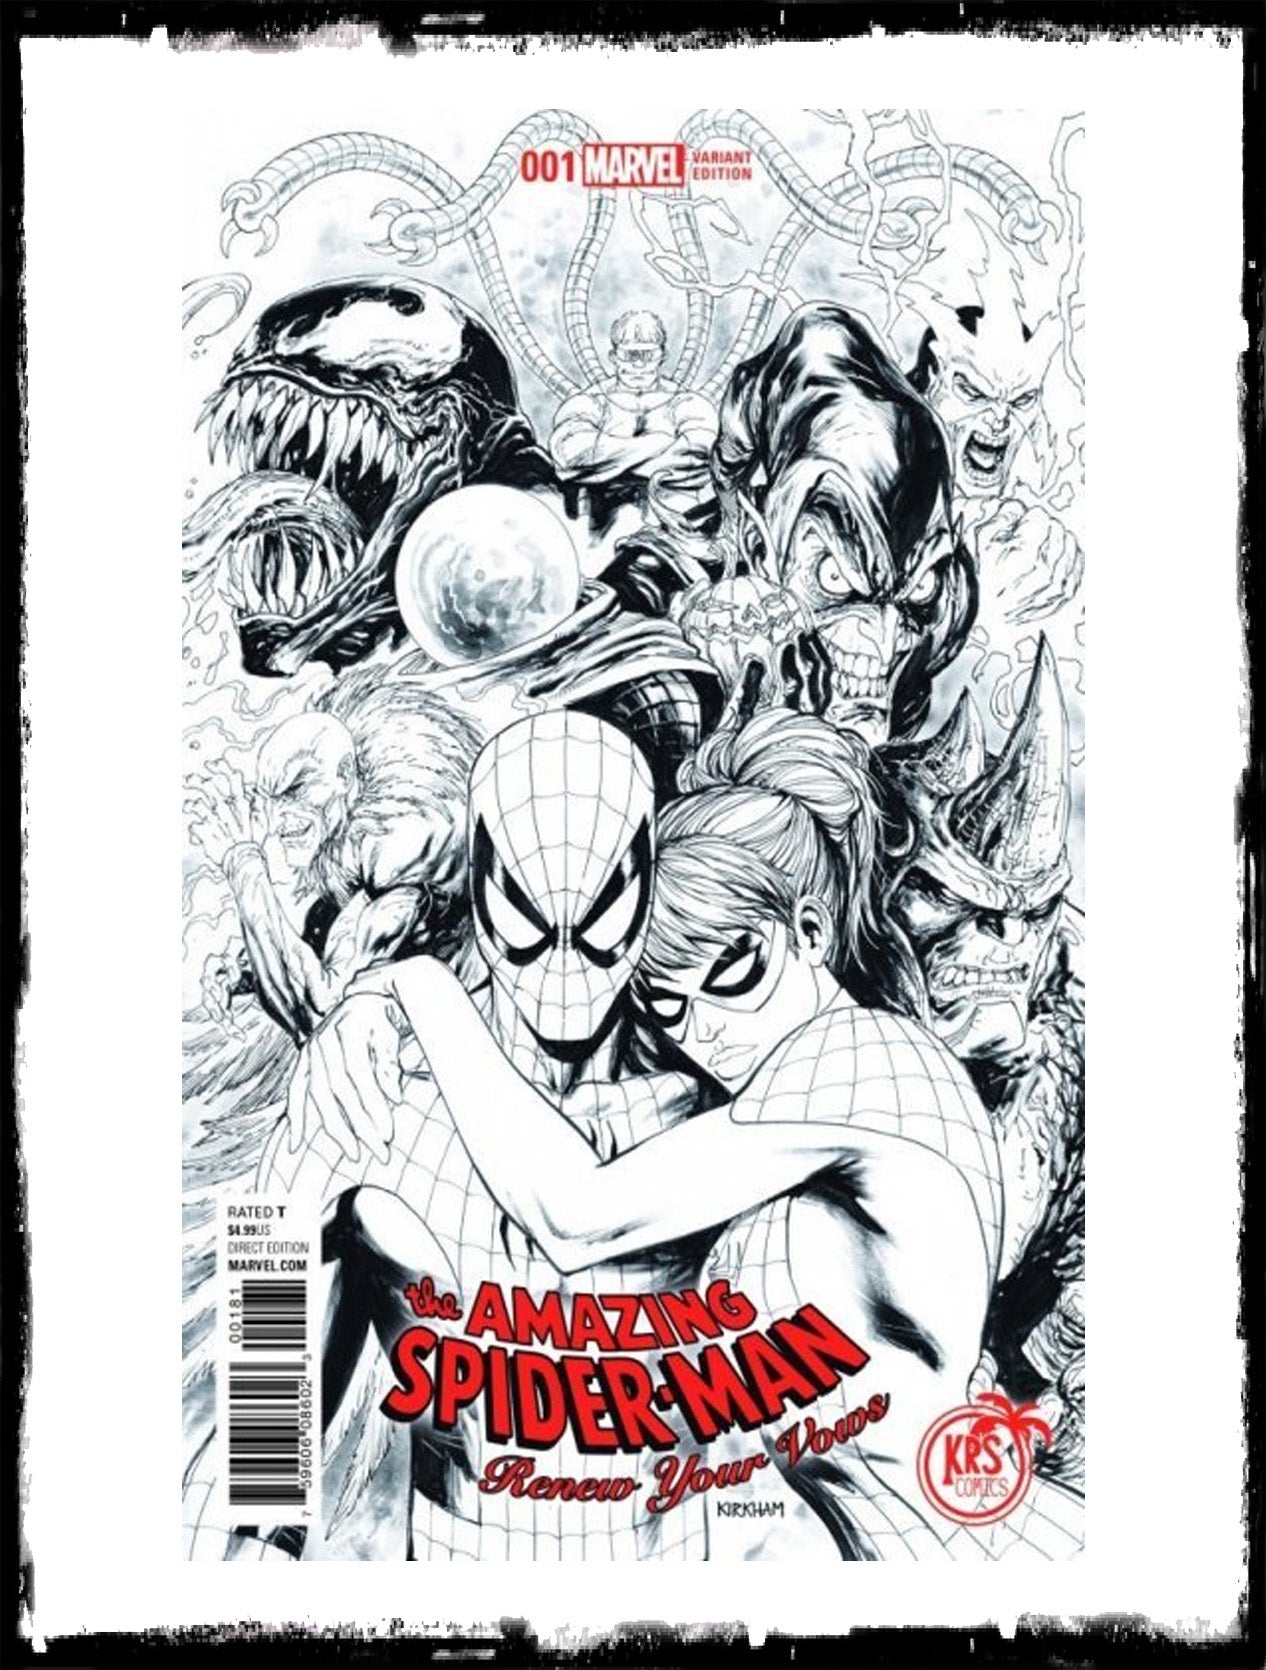 AMAZING SPIDER-MAN - RENEW YOUR VOWS #1  TYLER KIRKHAM B&W VARIANT LIMITED TO 1500 (2017 - CONDITION NM)